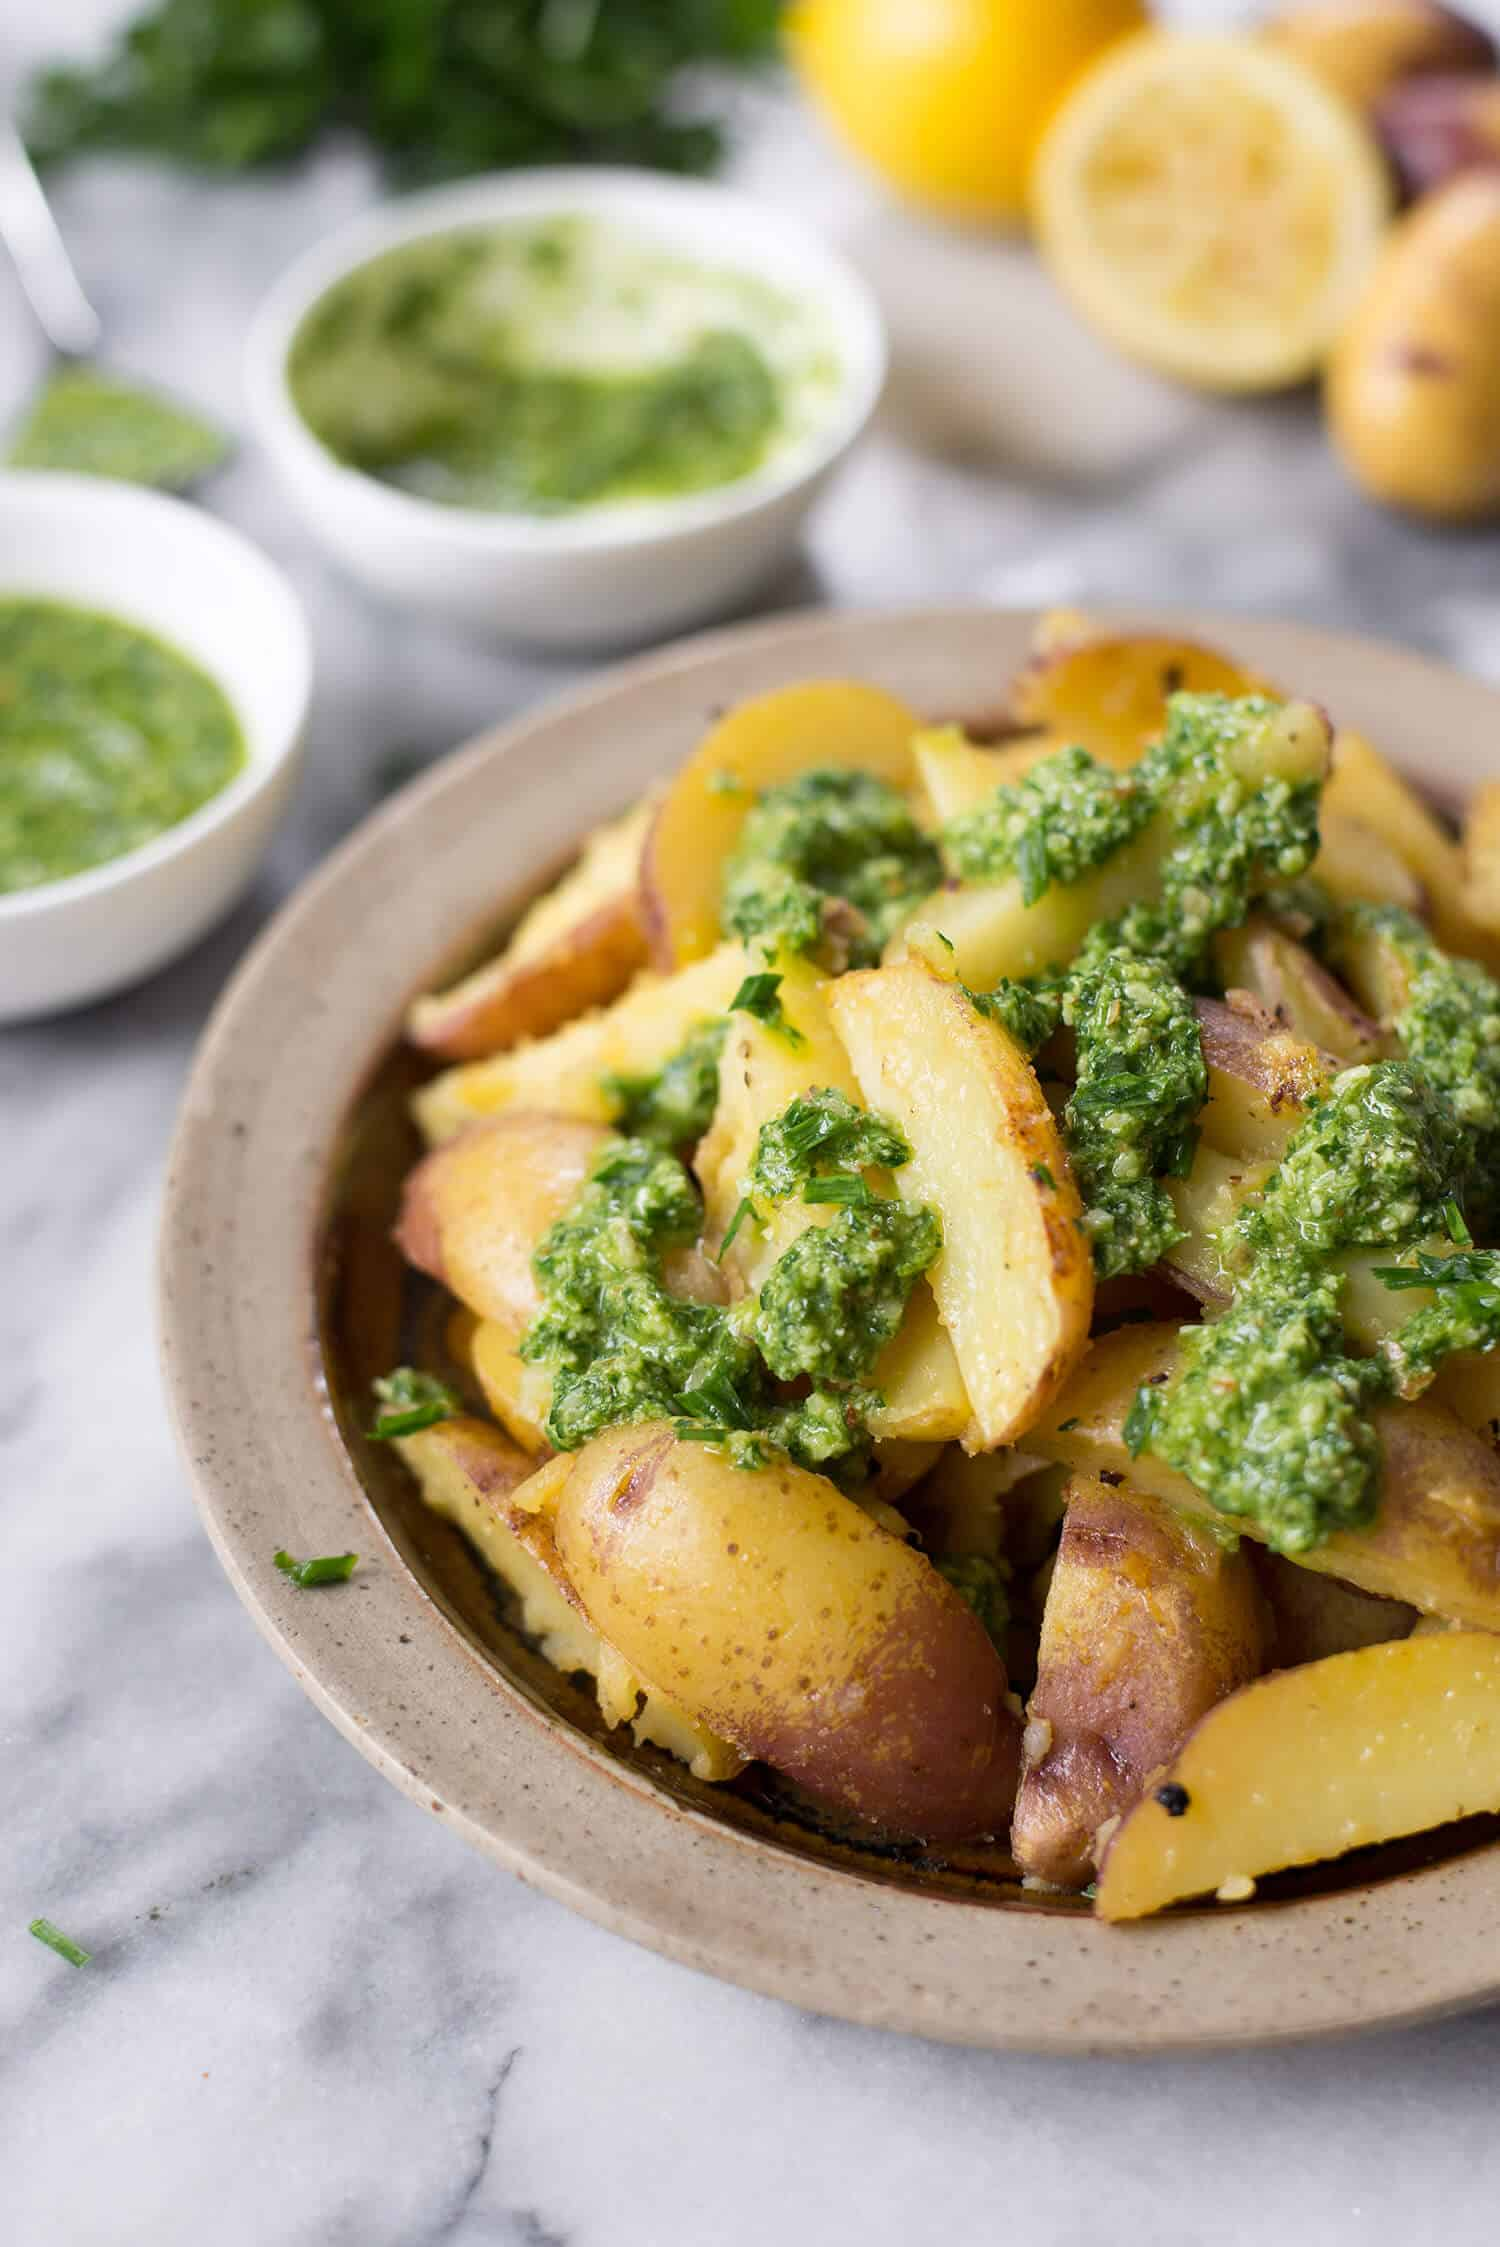 Lemon Pan-Fried Potatoes with Chive Pesto. The perfect side dish for the holidays. Vegan and gluten-free. | www.delishknowledge.com